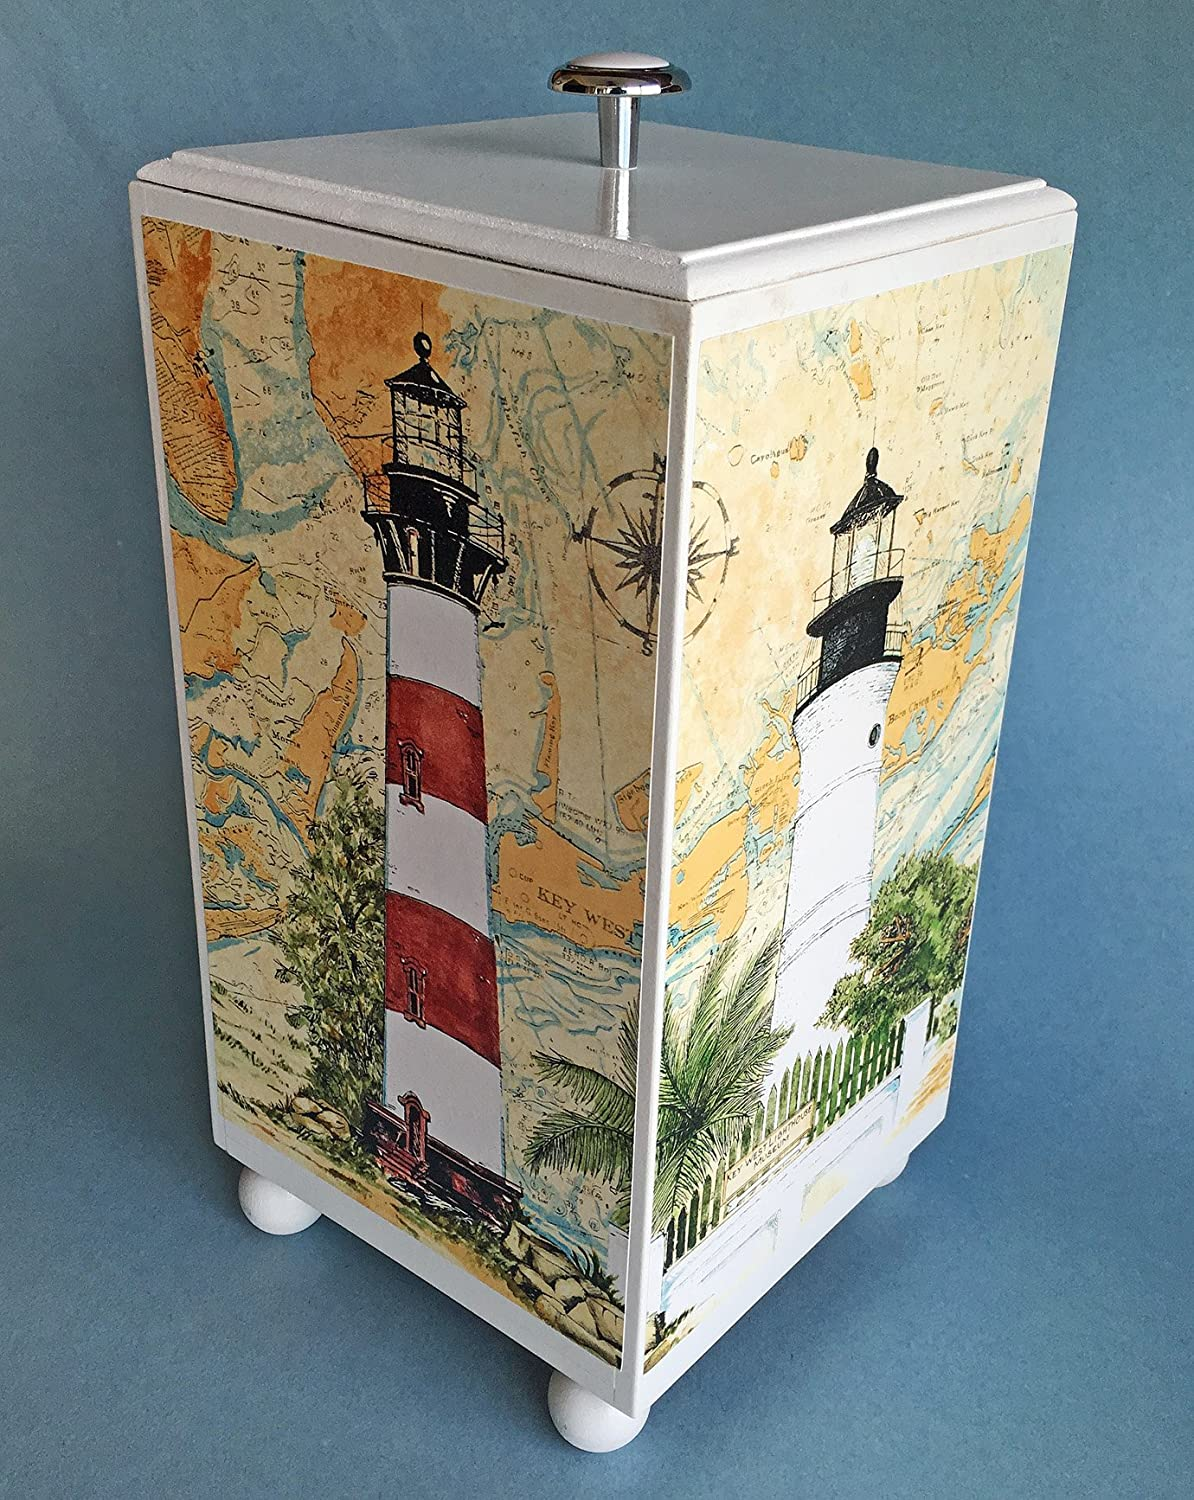 Kensington Row Coastal Collection Bathroom Accessories - Coastal Lighthouse Wooden Toilet Paper Storage Container - Nautical Decor - Slightly Damaged Kensington Row Collection